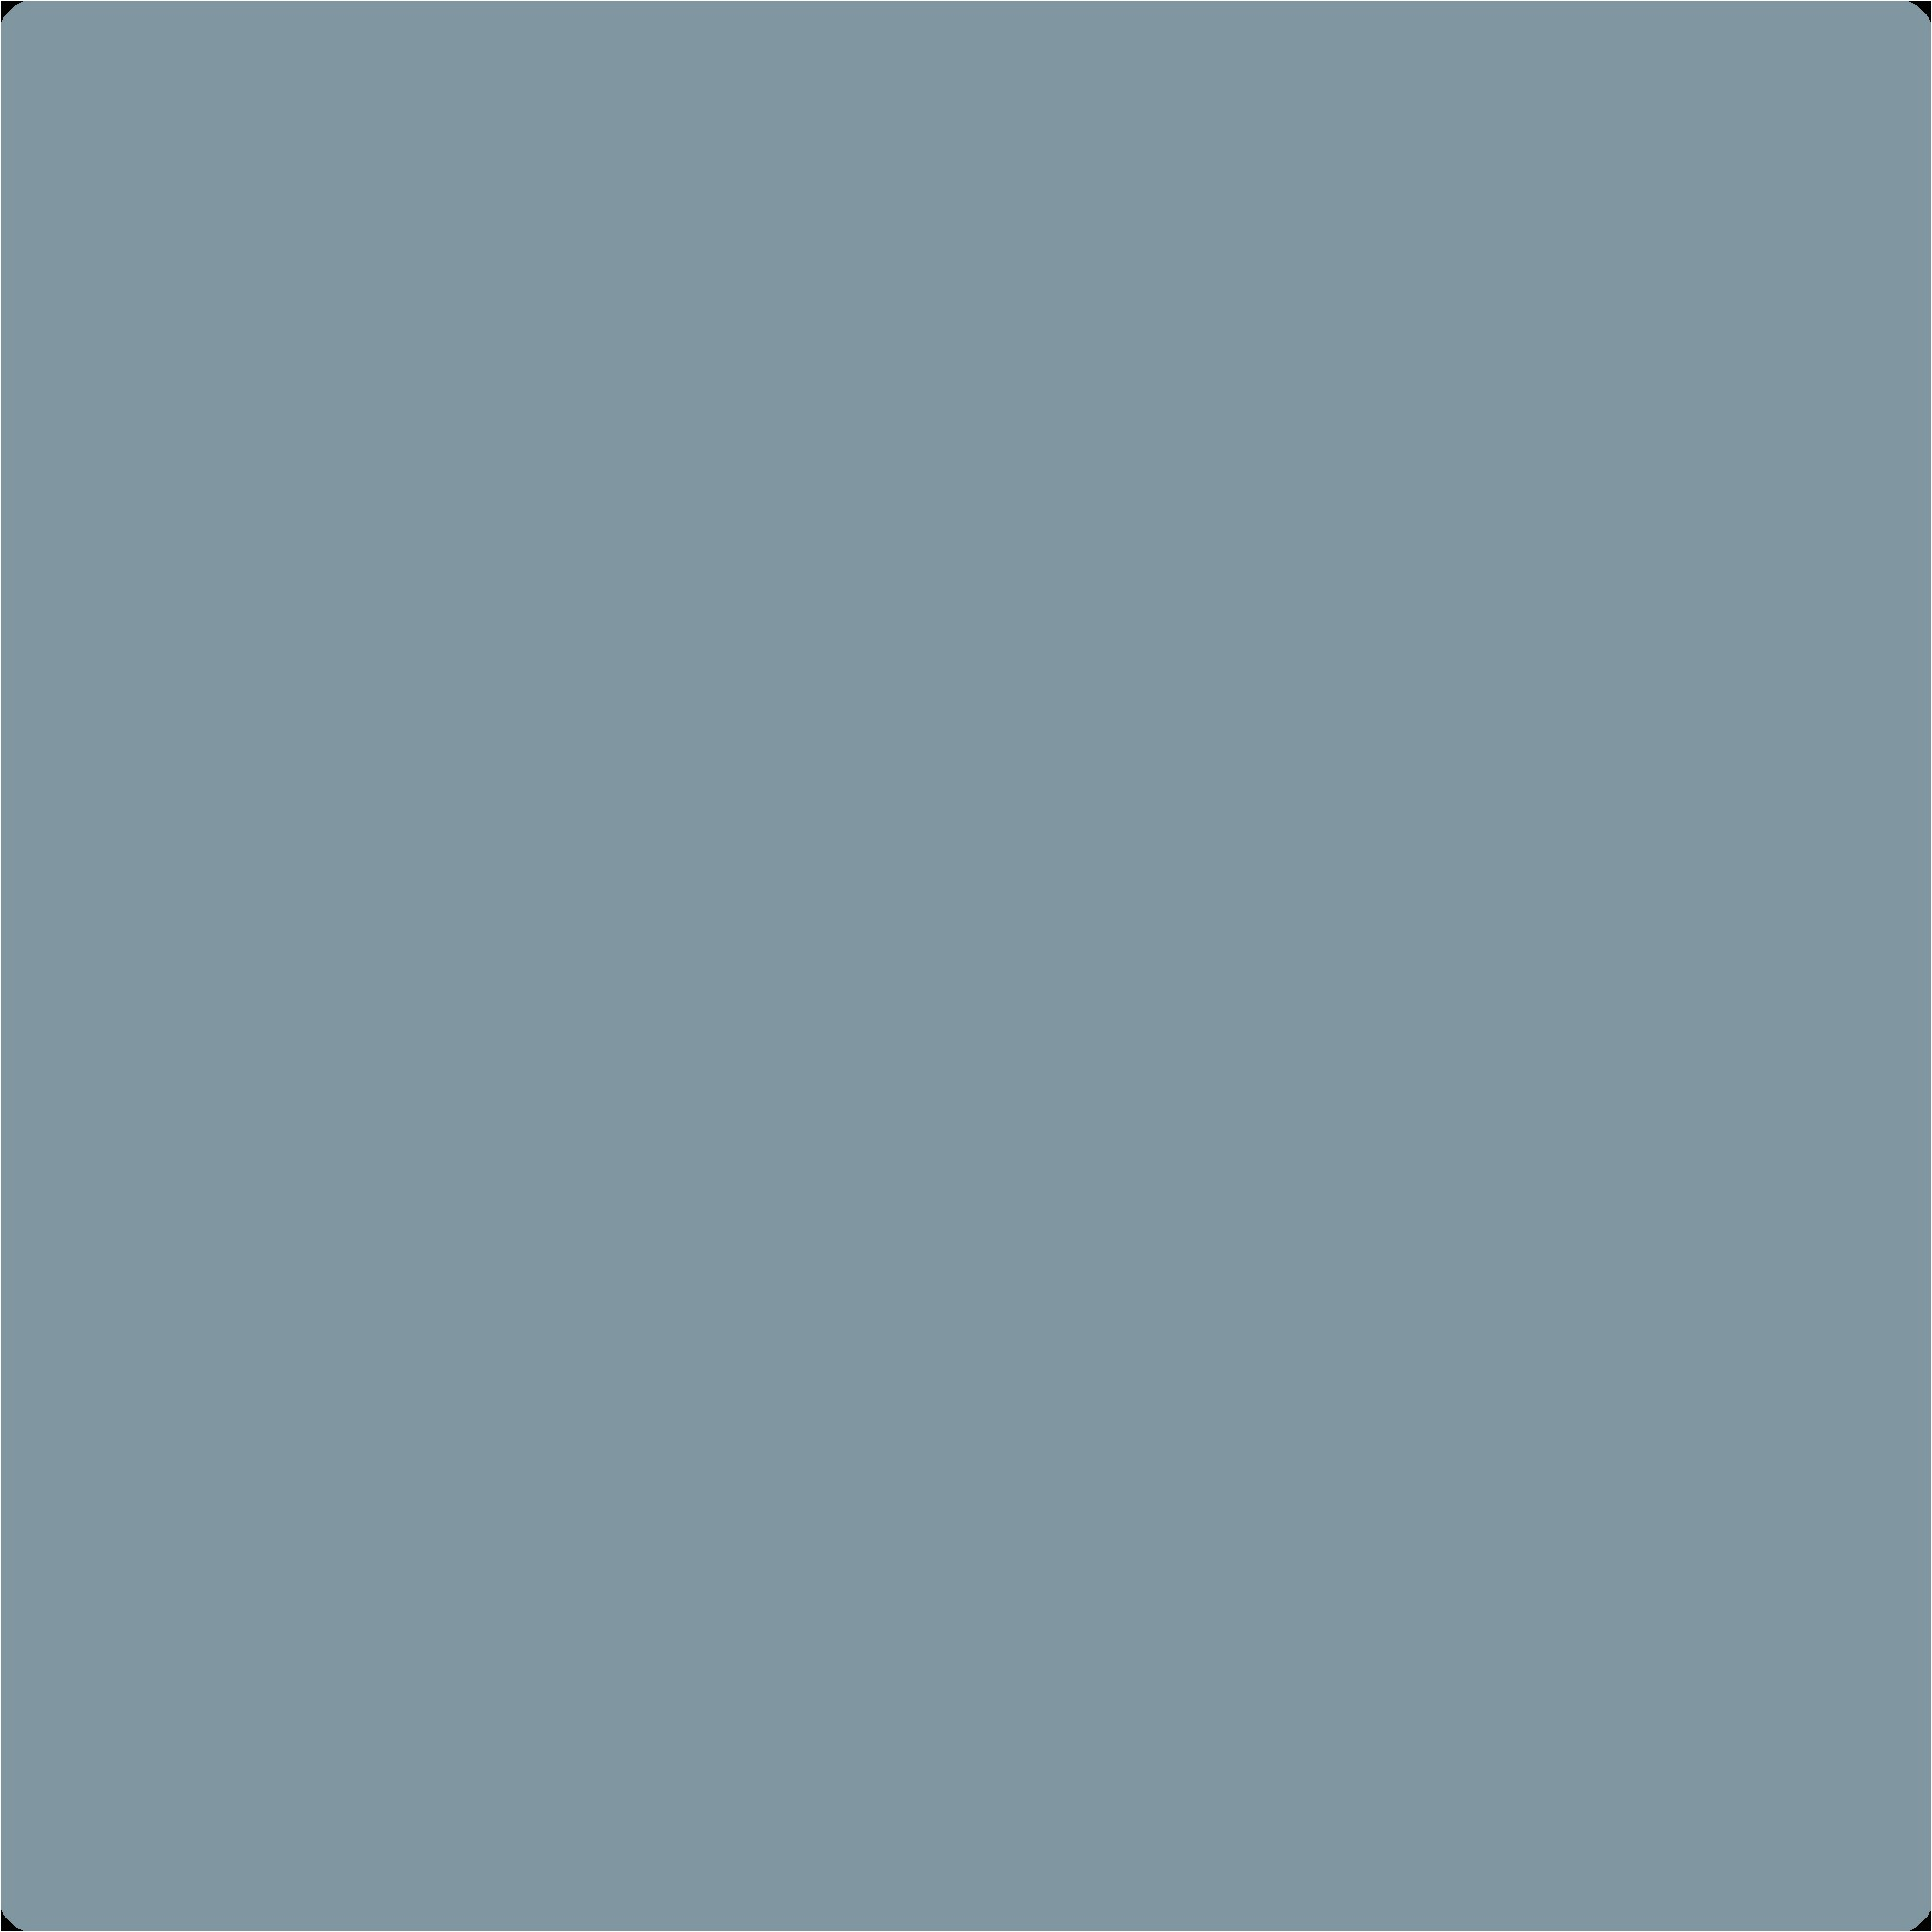 Benjamin Moore Polaris Blue 1649 Polaris Blue by Benjamin Moore the Color House thecolorhouse